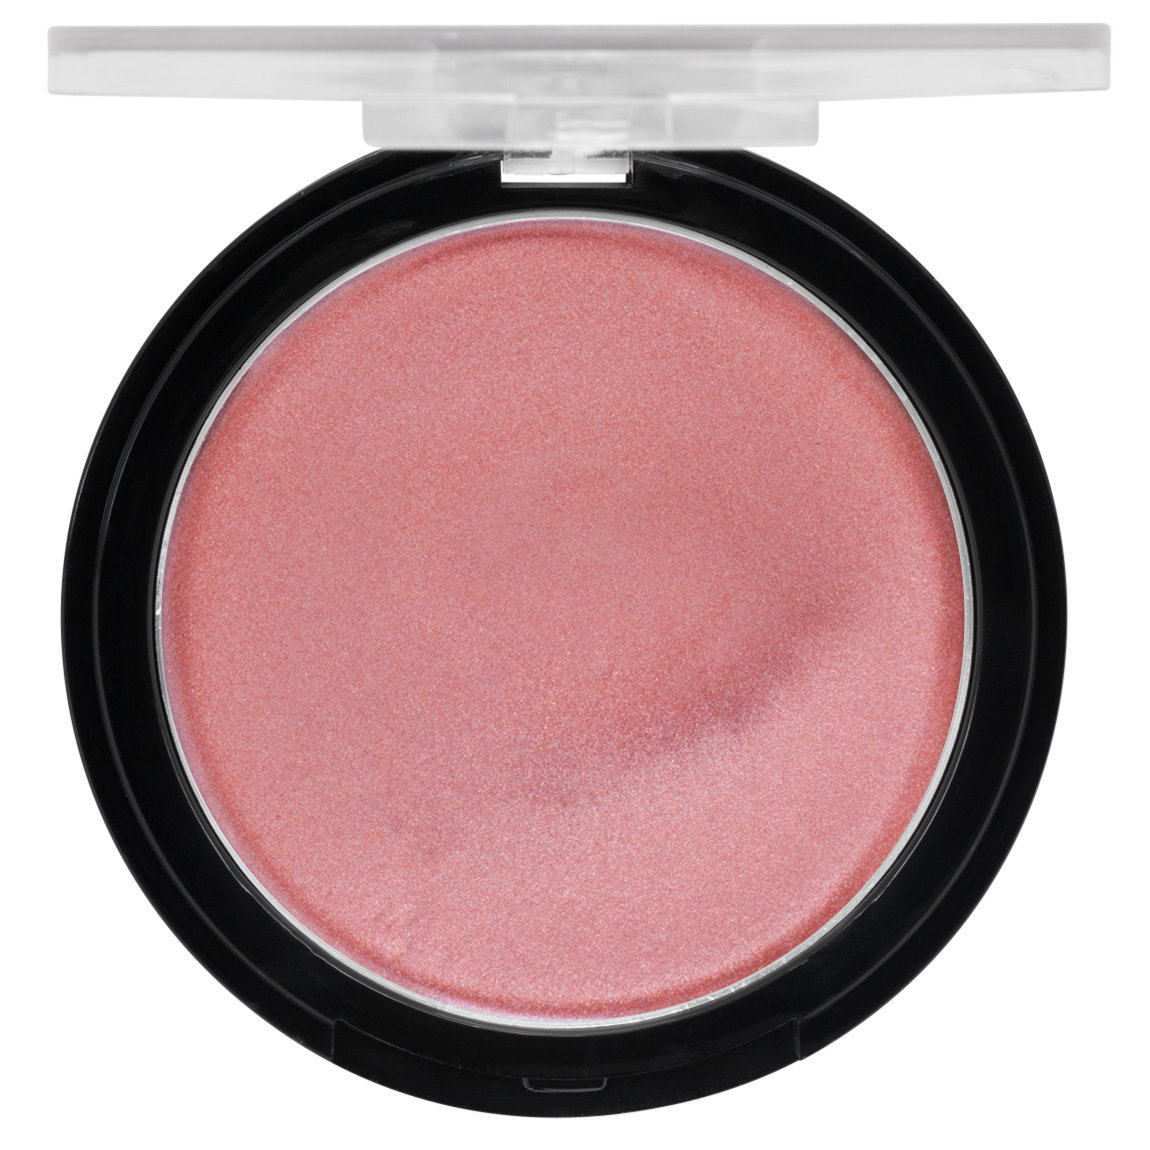 Danessa Myricks Beauty Dew Wet Balm Rosewater